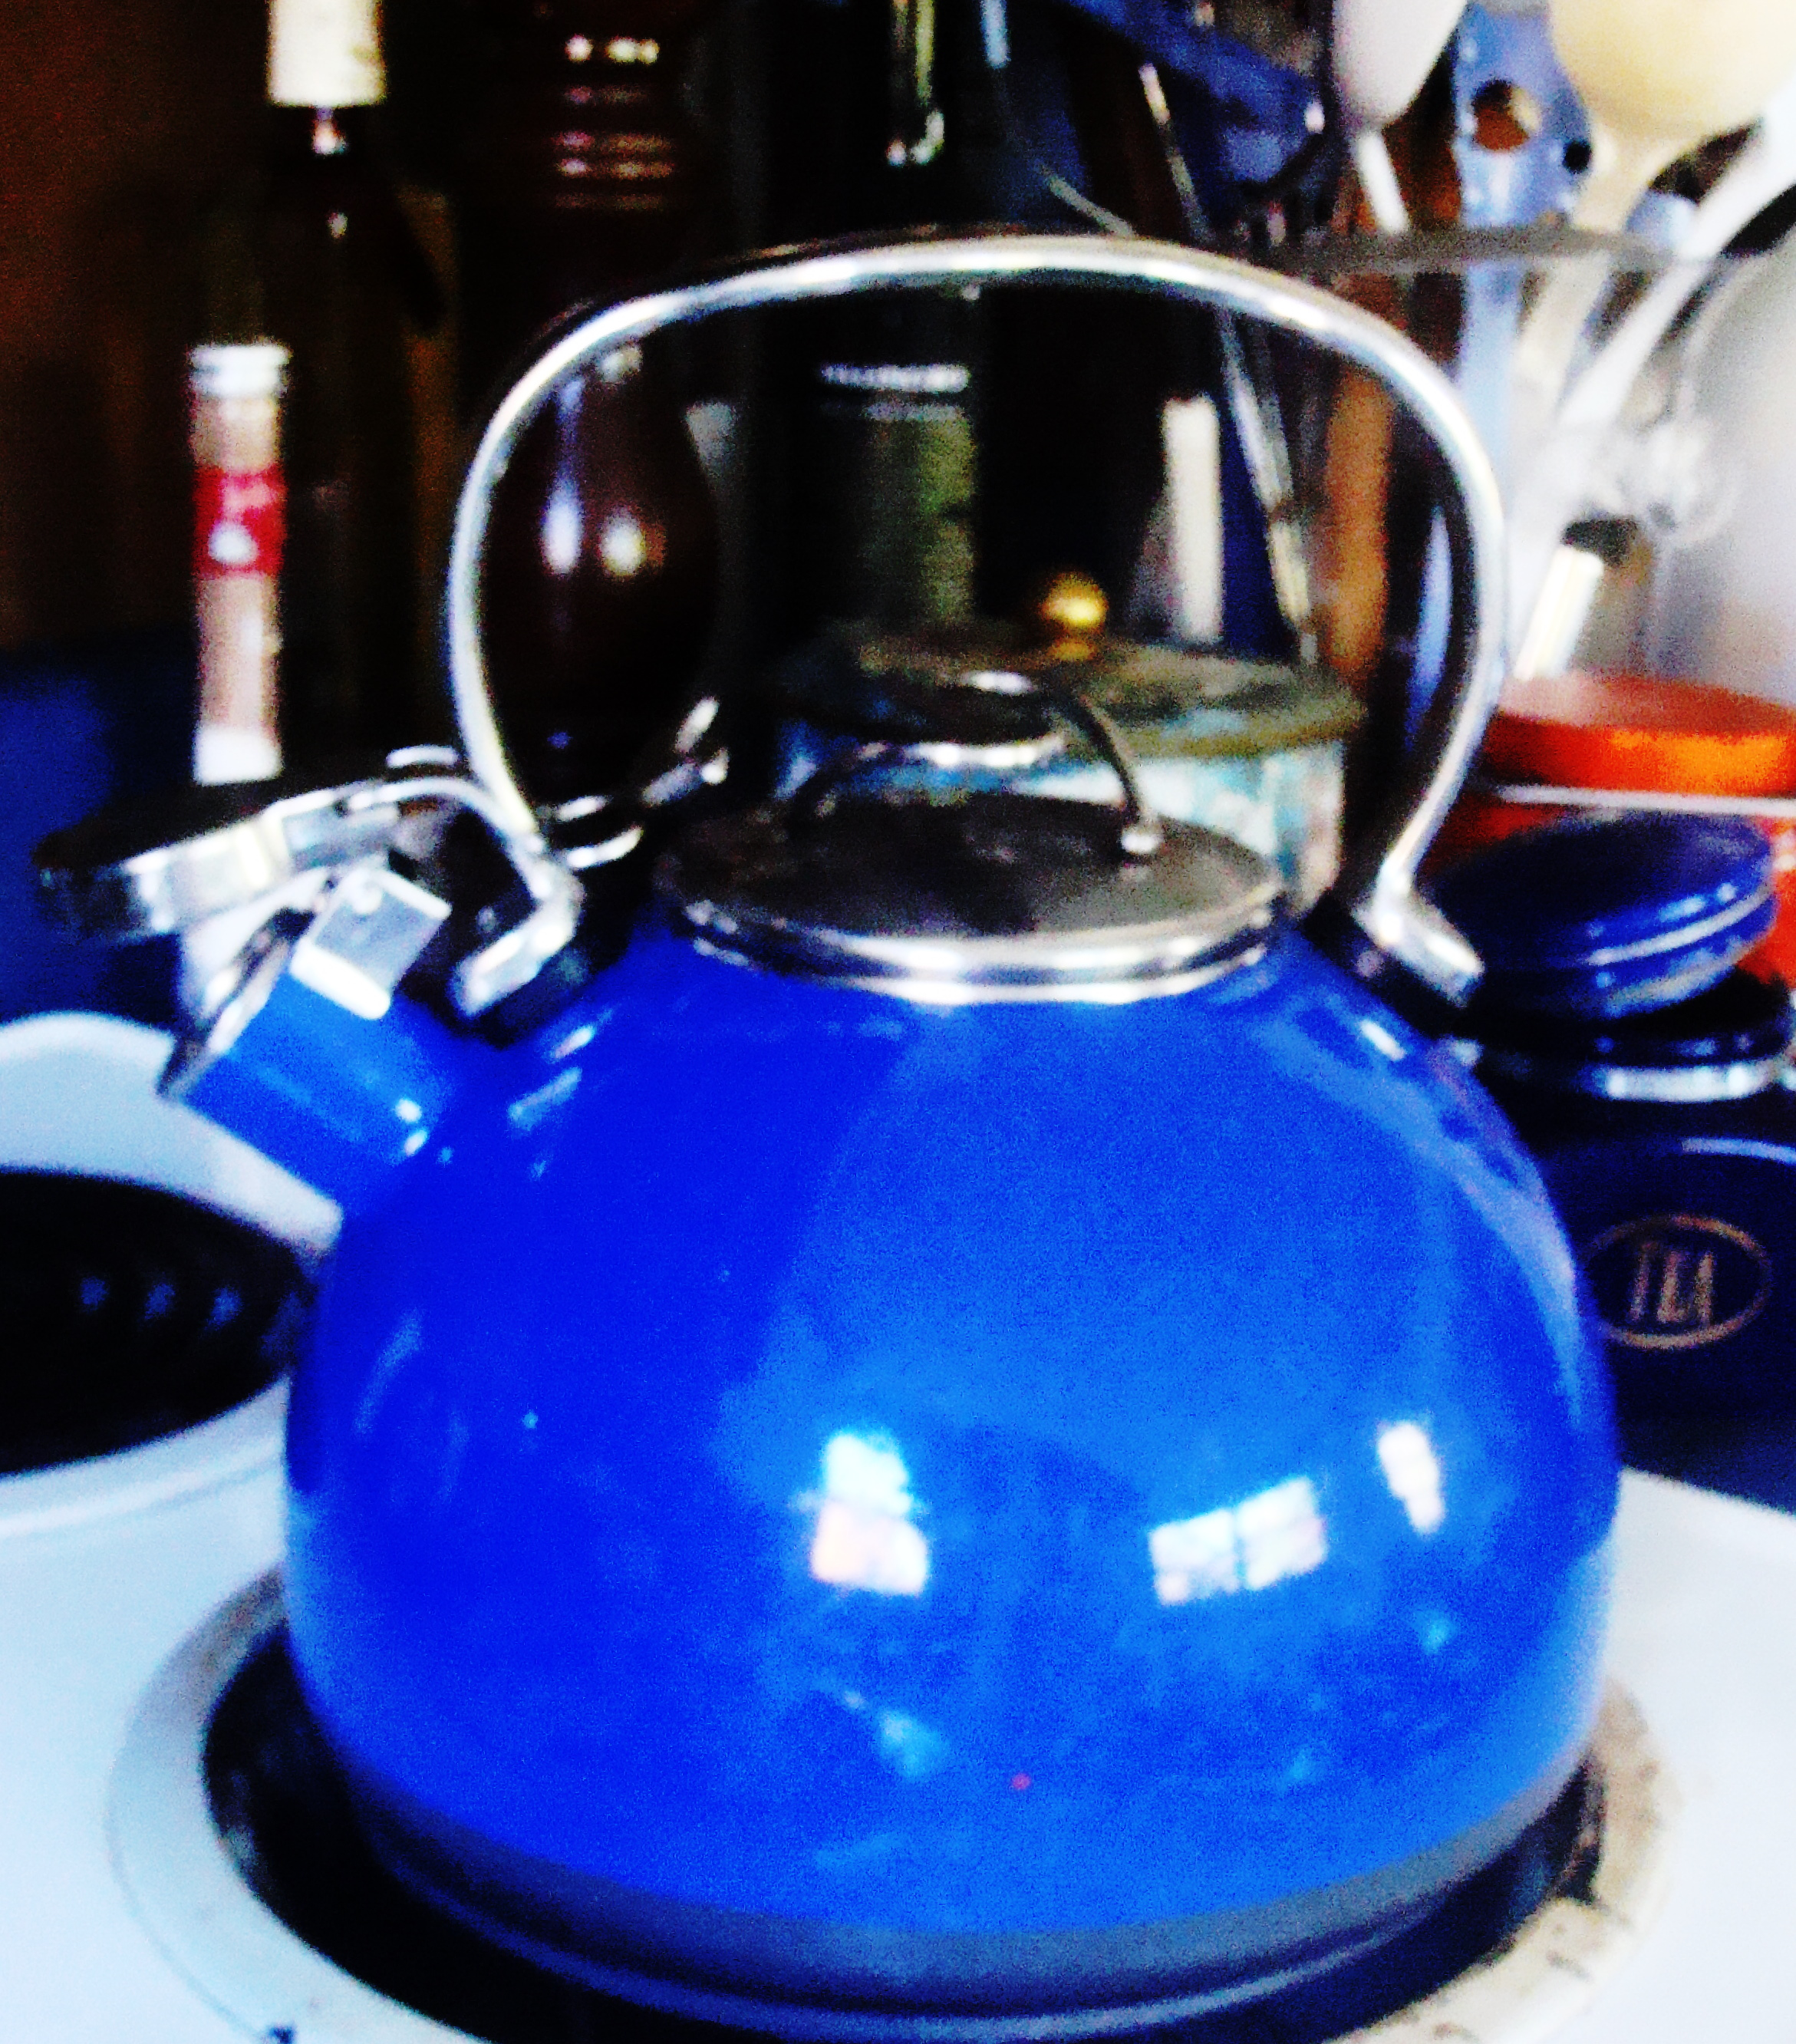 The well-used kettle.